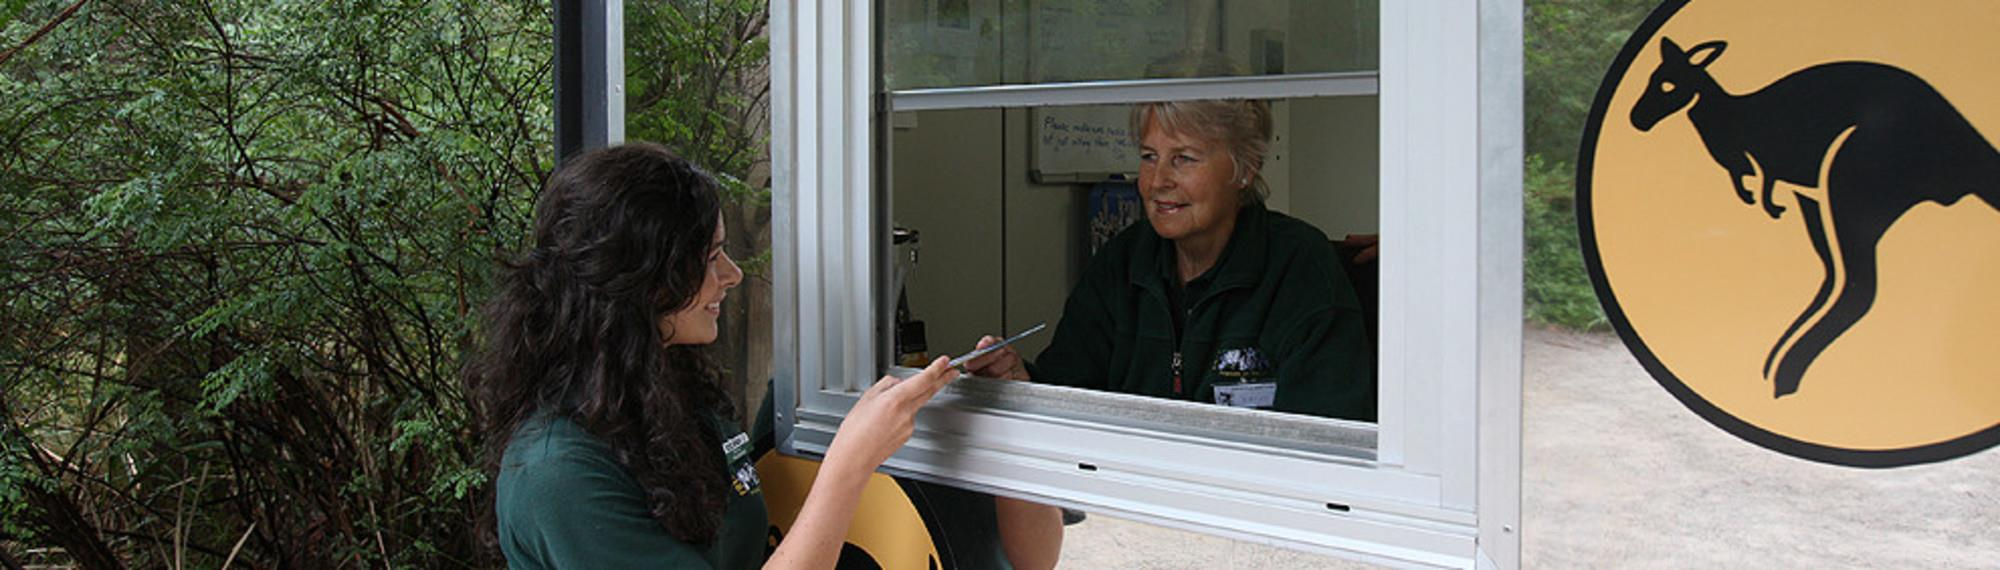 Volunteers talking at The Information Booth Healesville Sanctuary